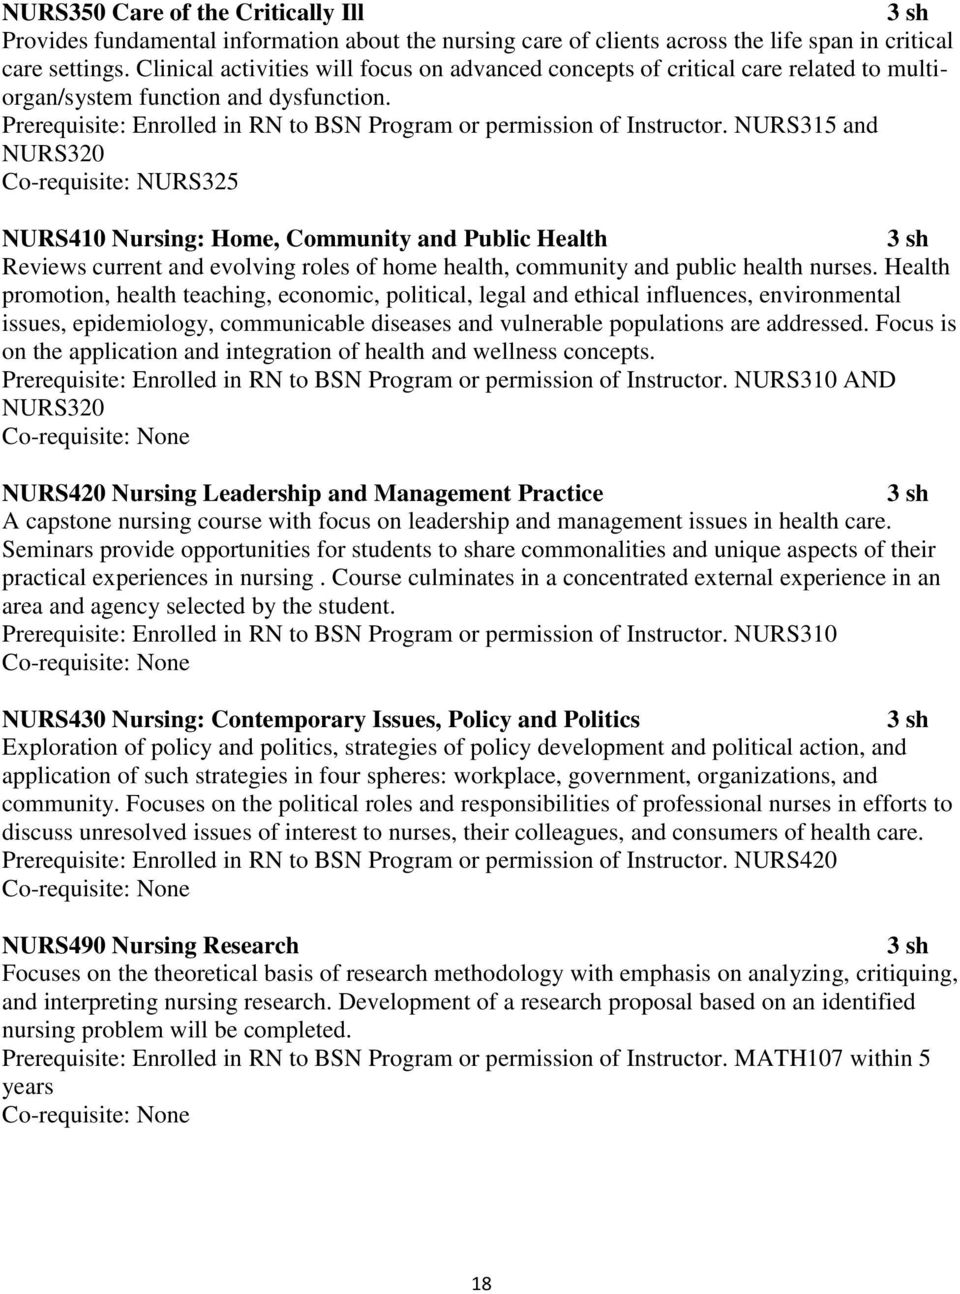 NURS315 and NURS320 Co-requisite: NURS325 NURS410 Nursing: Home, Community and Public Health Reviews current and evolving roles of home health, community and public health nurses.